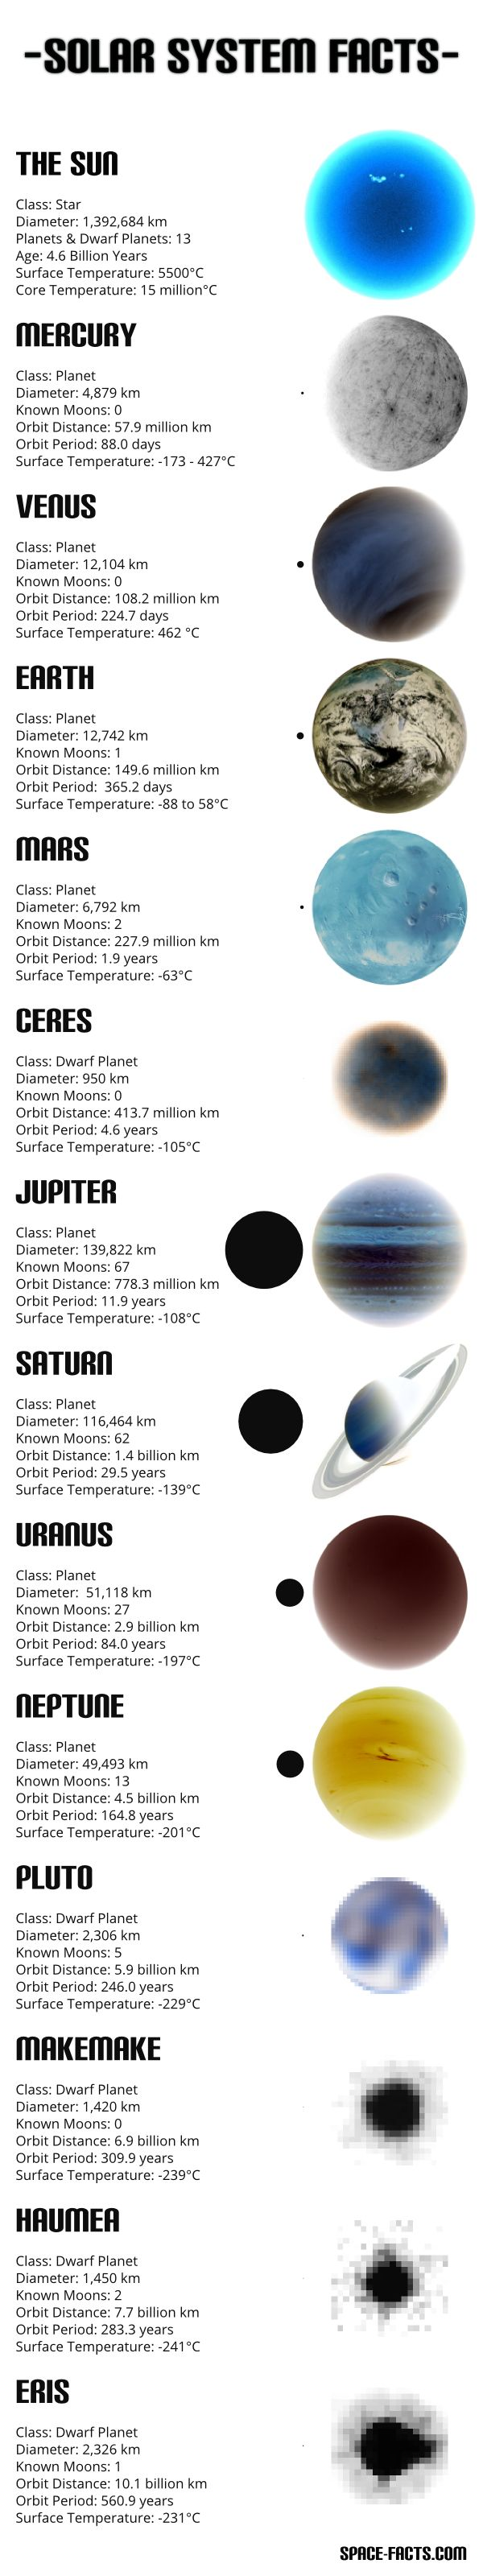 Solar system facts and information | About our universe ...